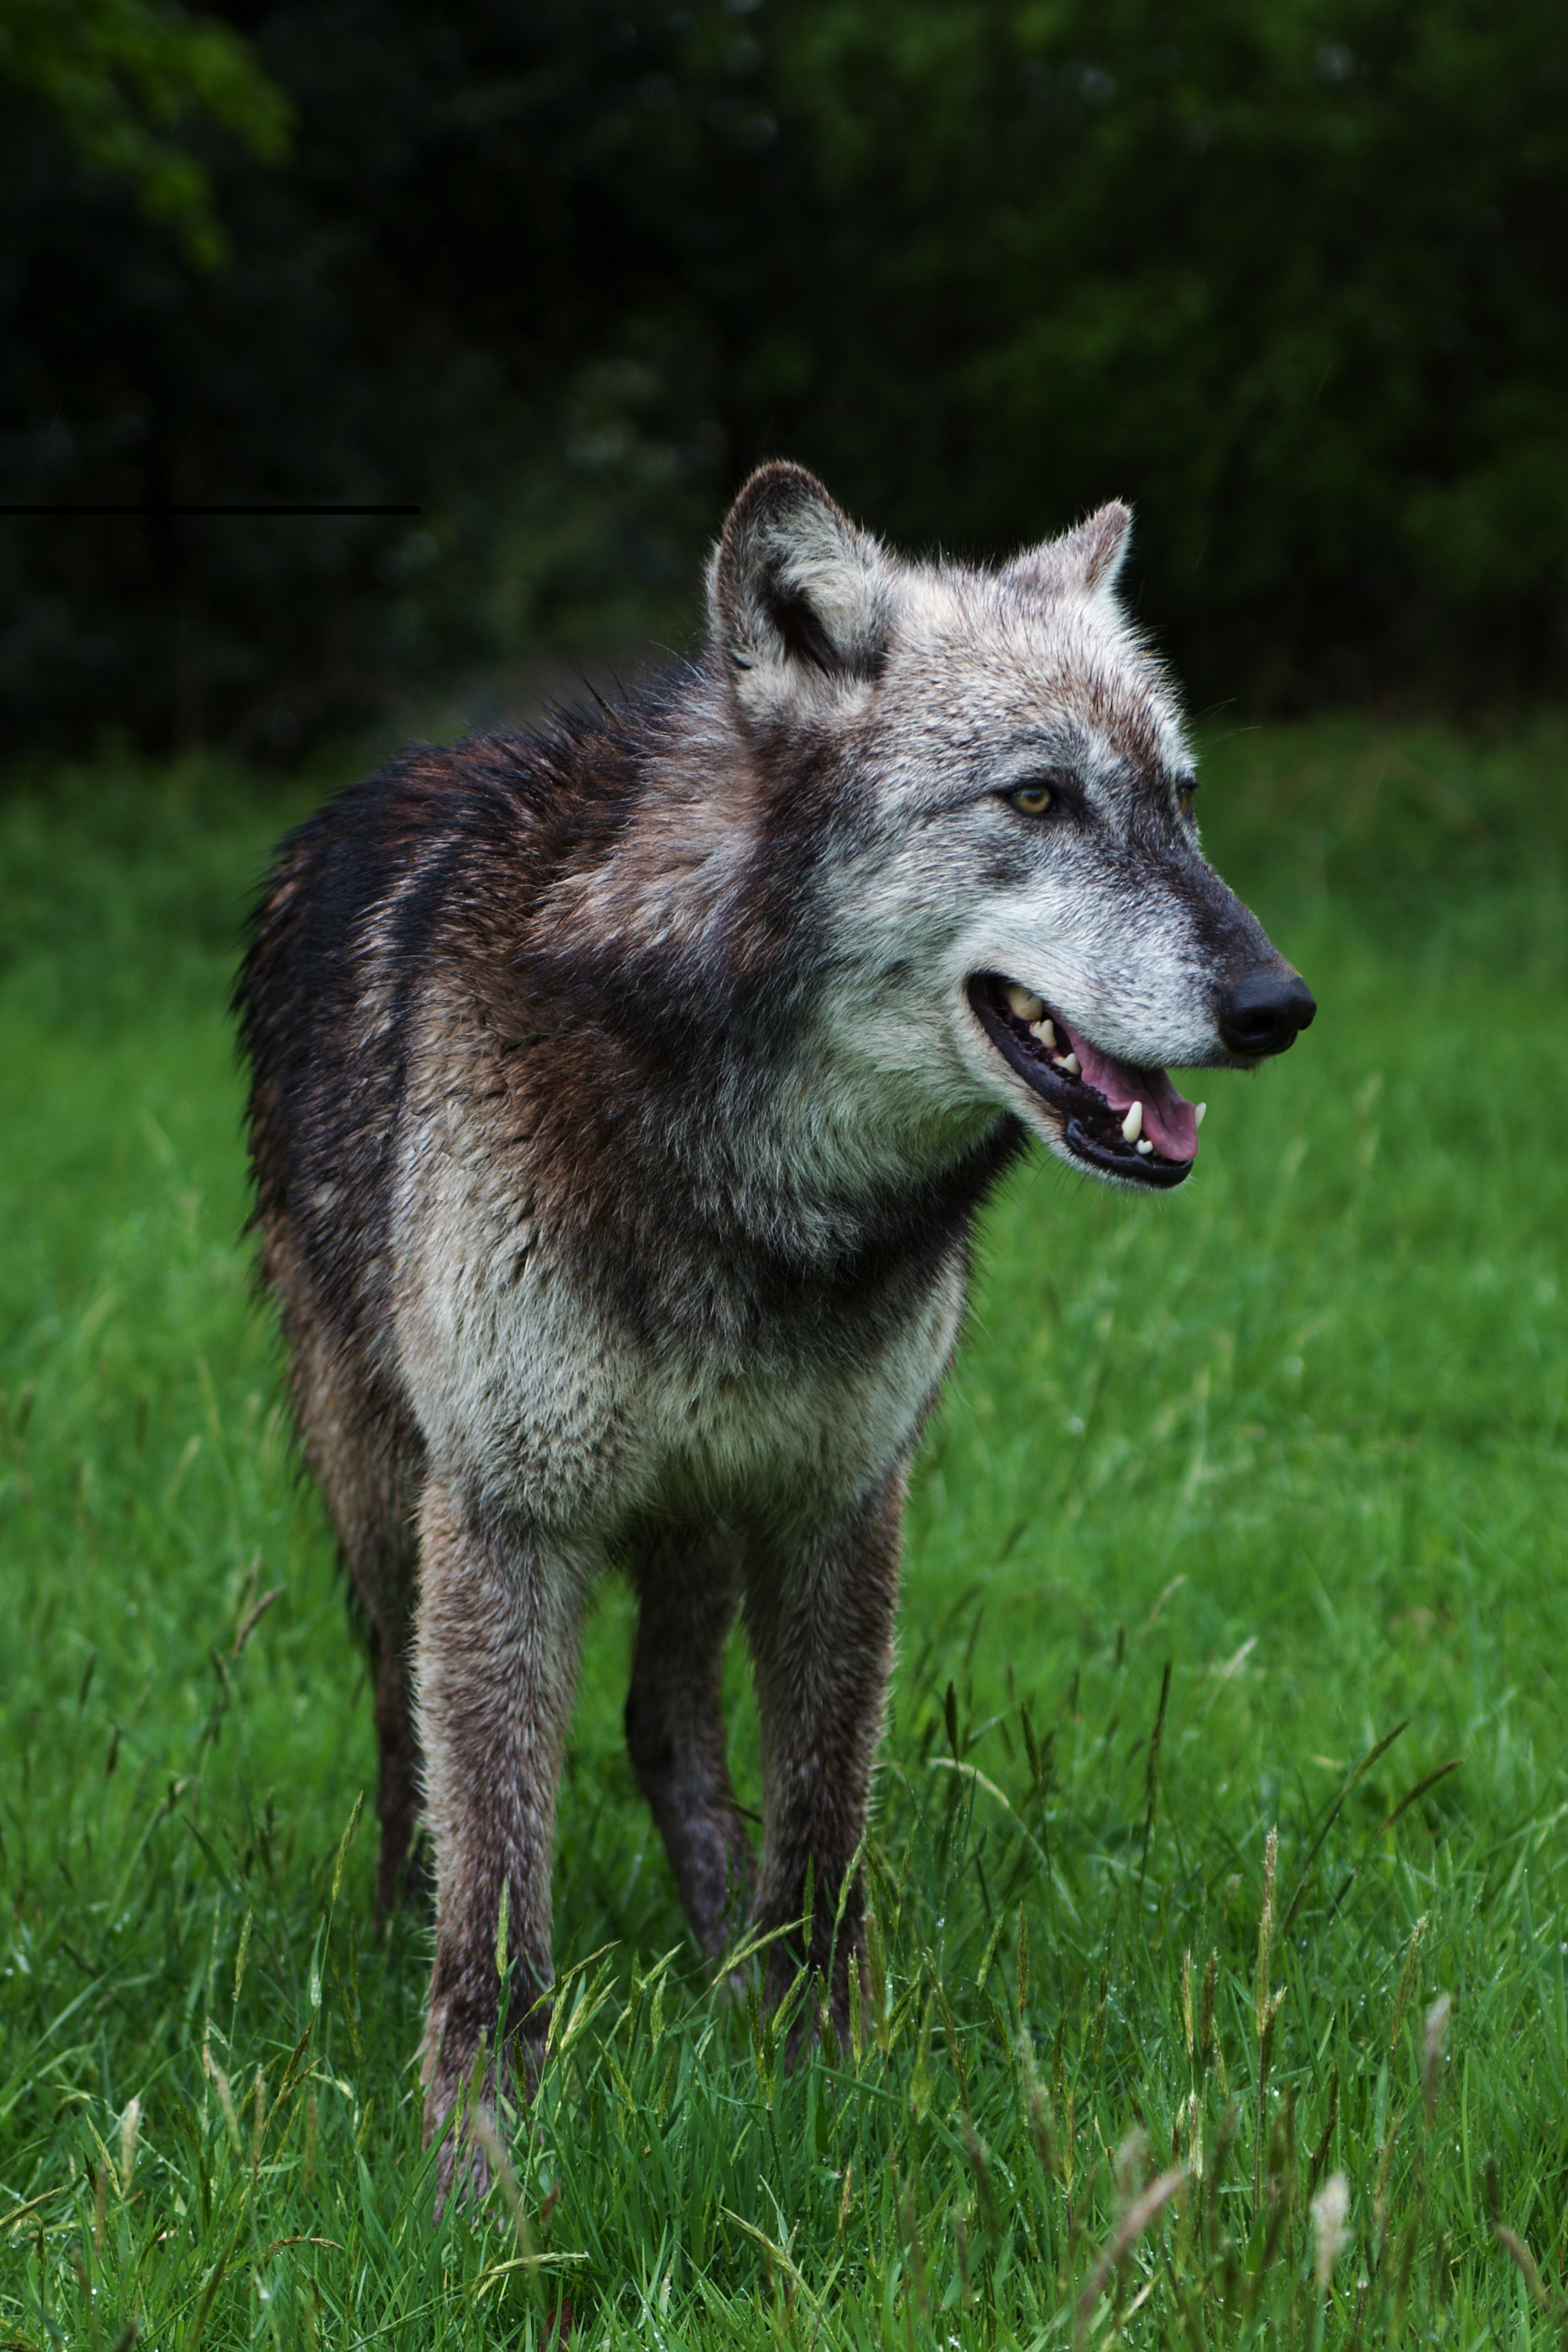 92072 download wallpaper Animals, Wolf, Predator, Dog, Wildlife, Grass screensavers and pictures for free